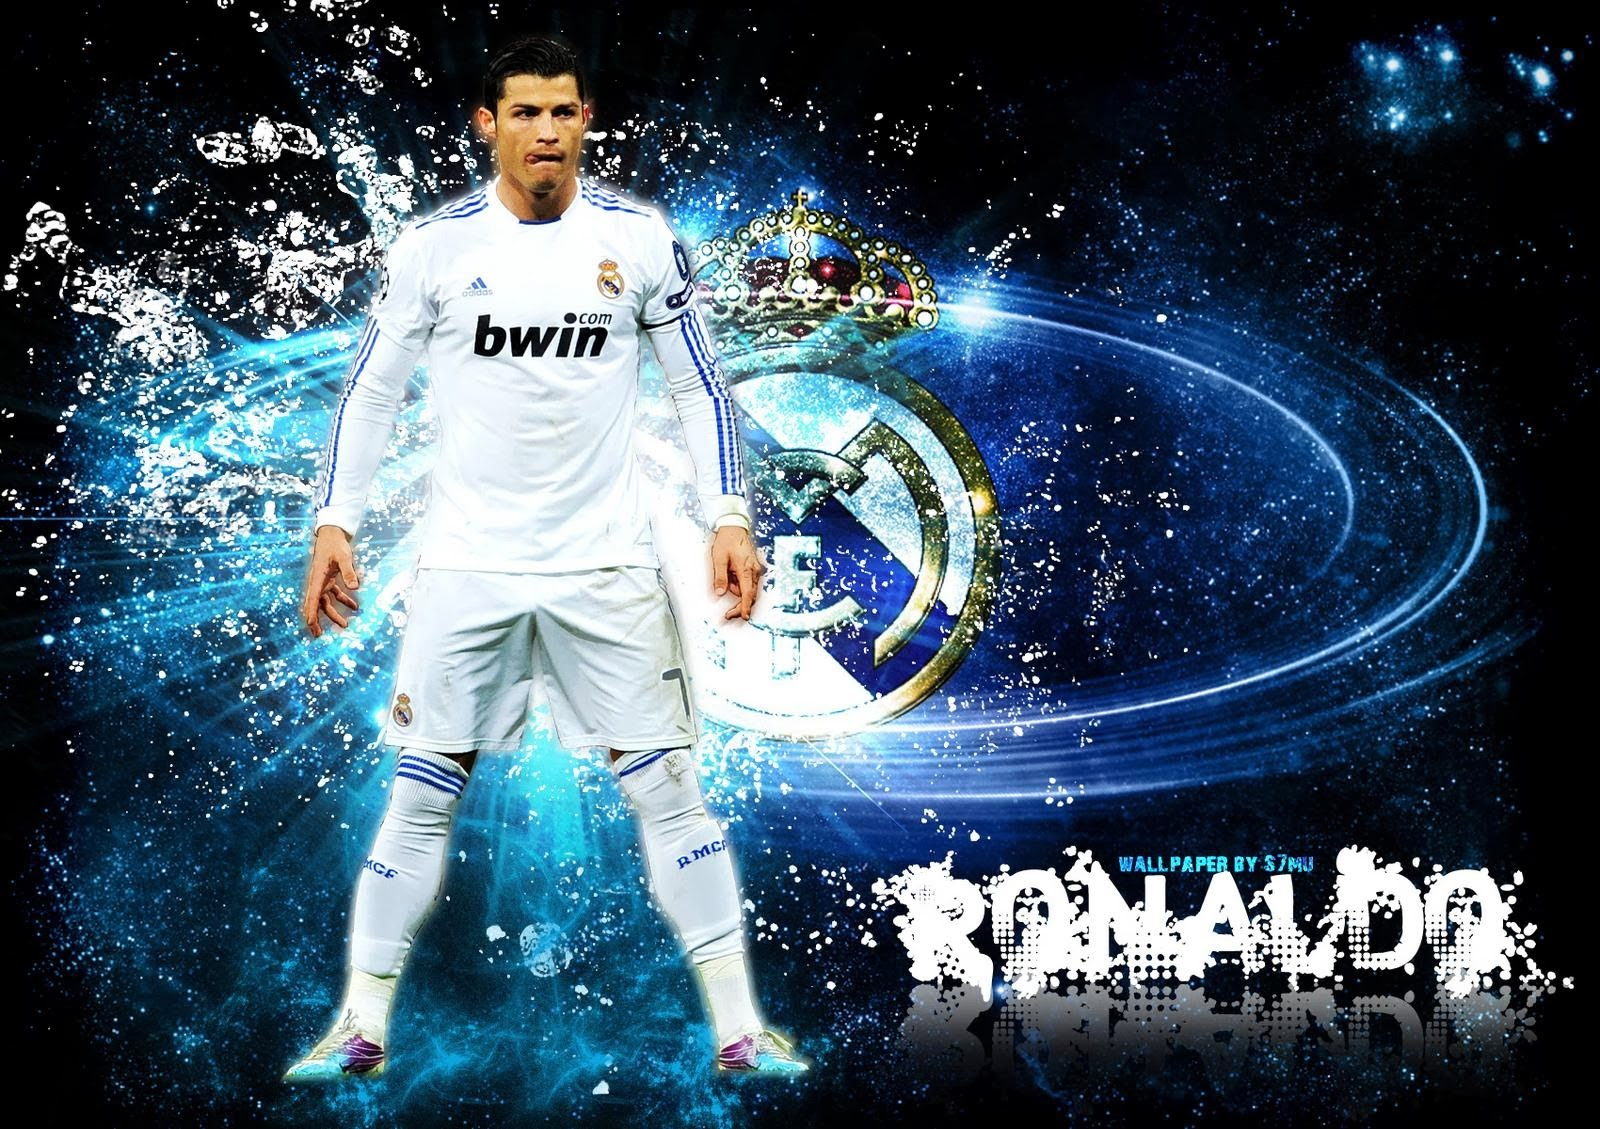 Cristiano Ronaldo HD Wallpaper,Images,Pics  HD Wallpapers Blog 1600x1129